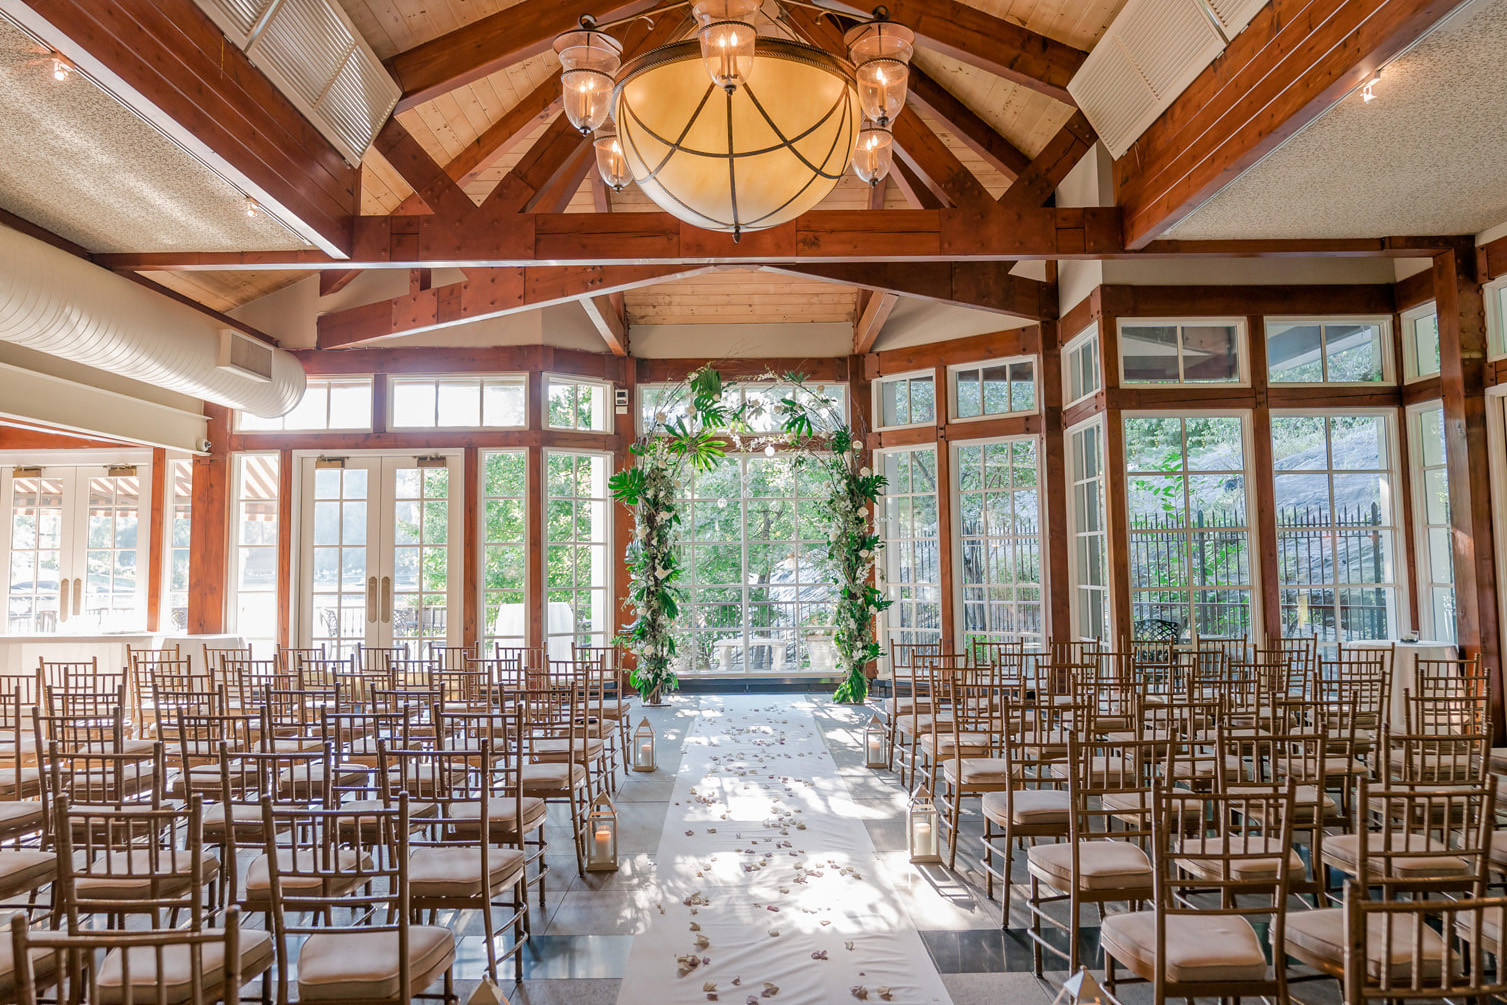 Weddings at the Central Park Boathouse